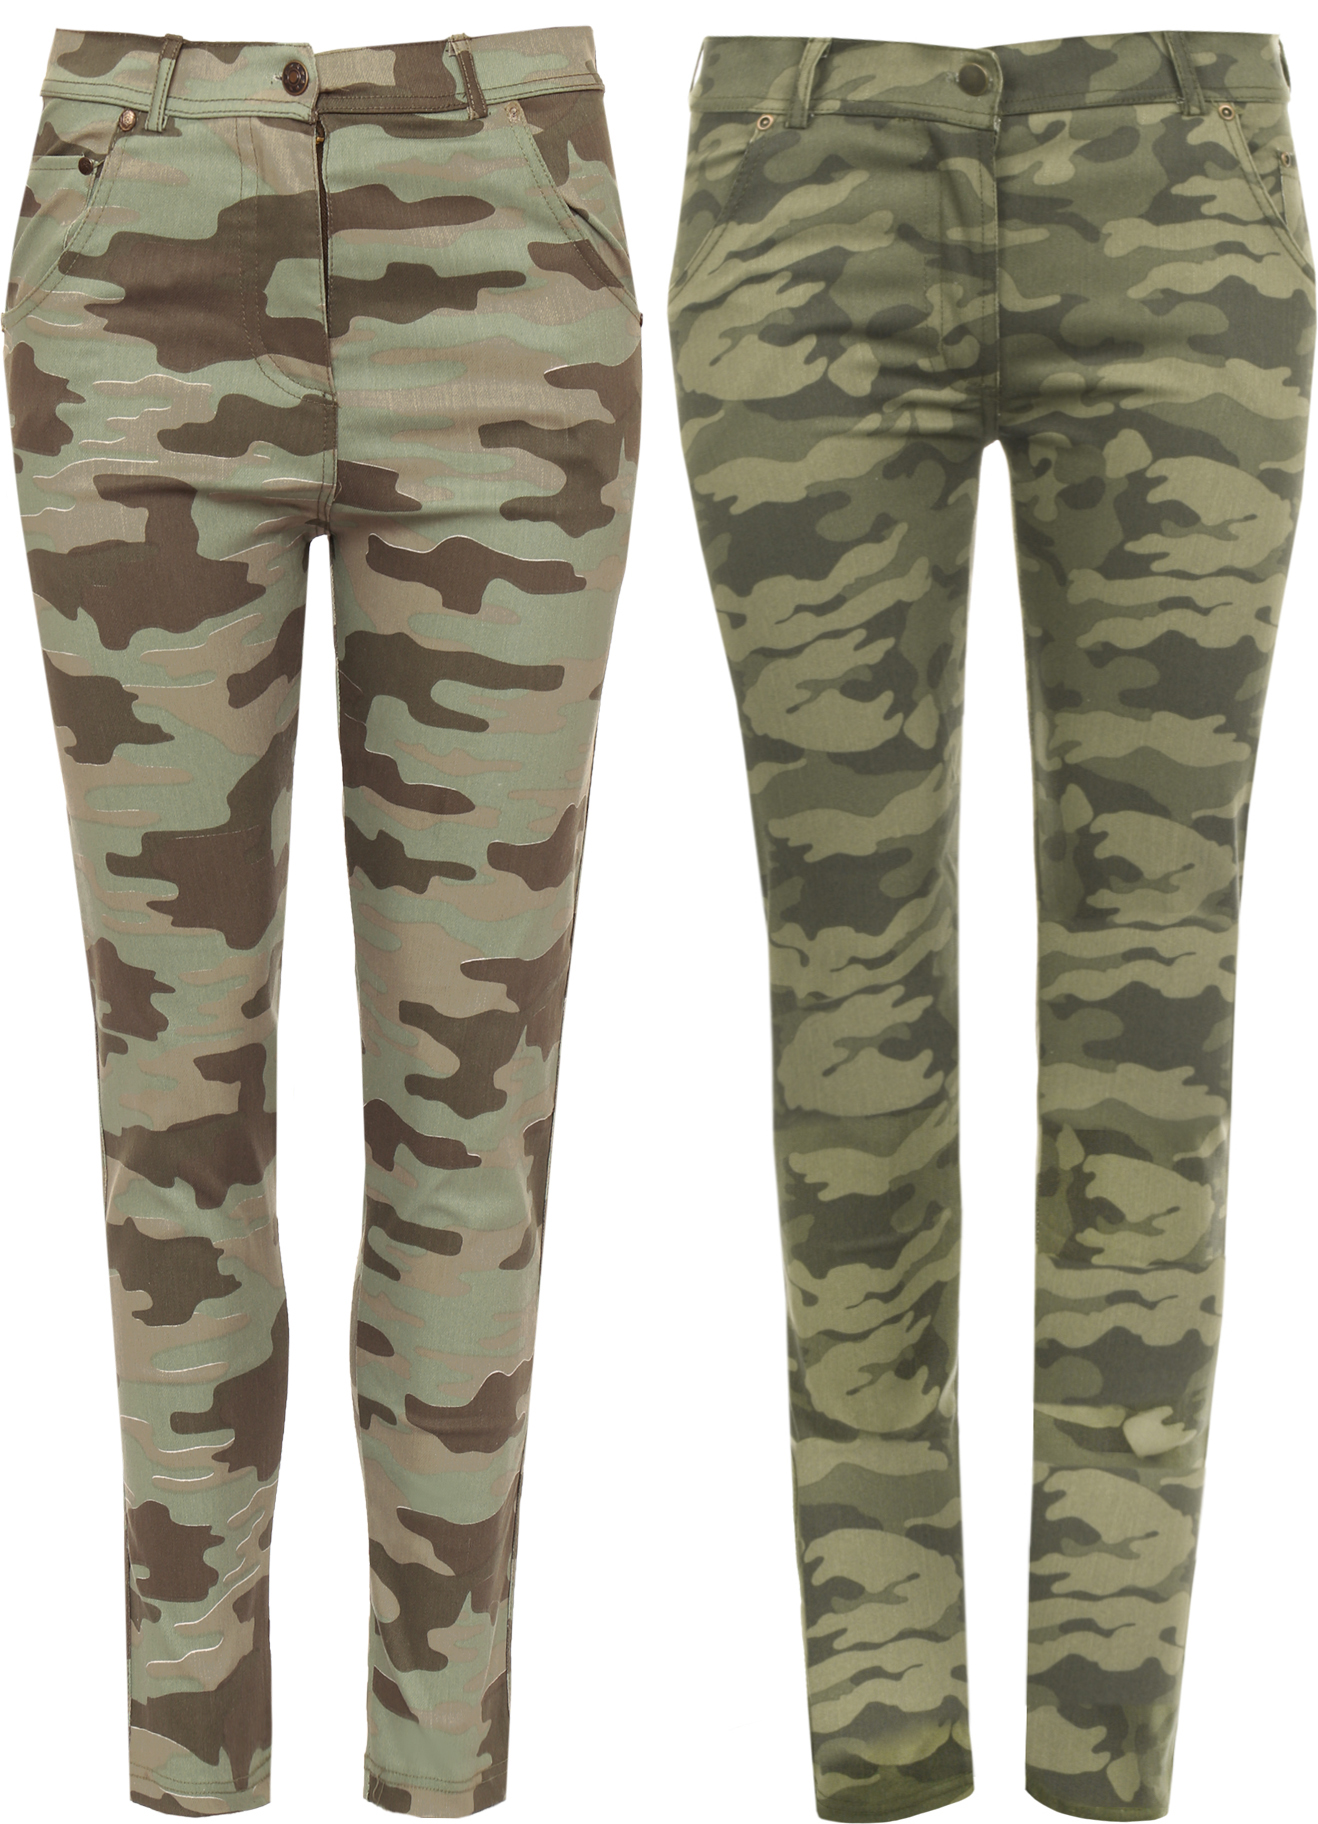 Fatigues Army Navy Store will supply you with kids camo, fatigue pants, military bags, tactical gear, camping, survival prepper supplies, military clothing, street wear fashion and accessories.